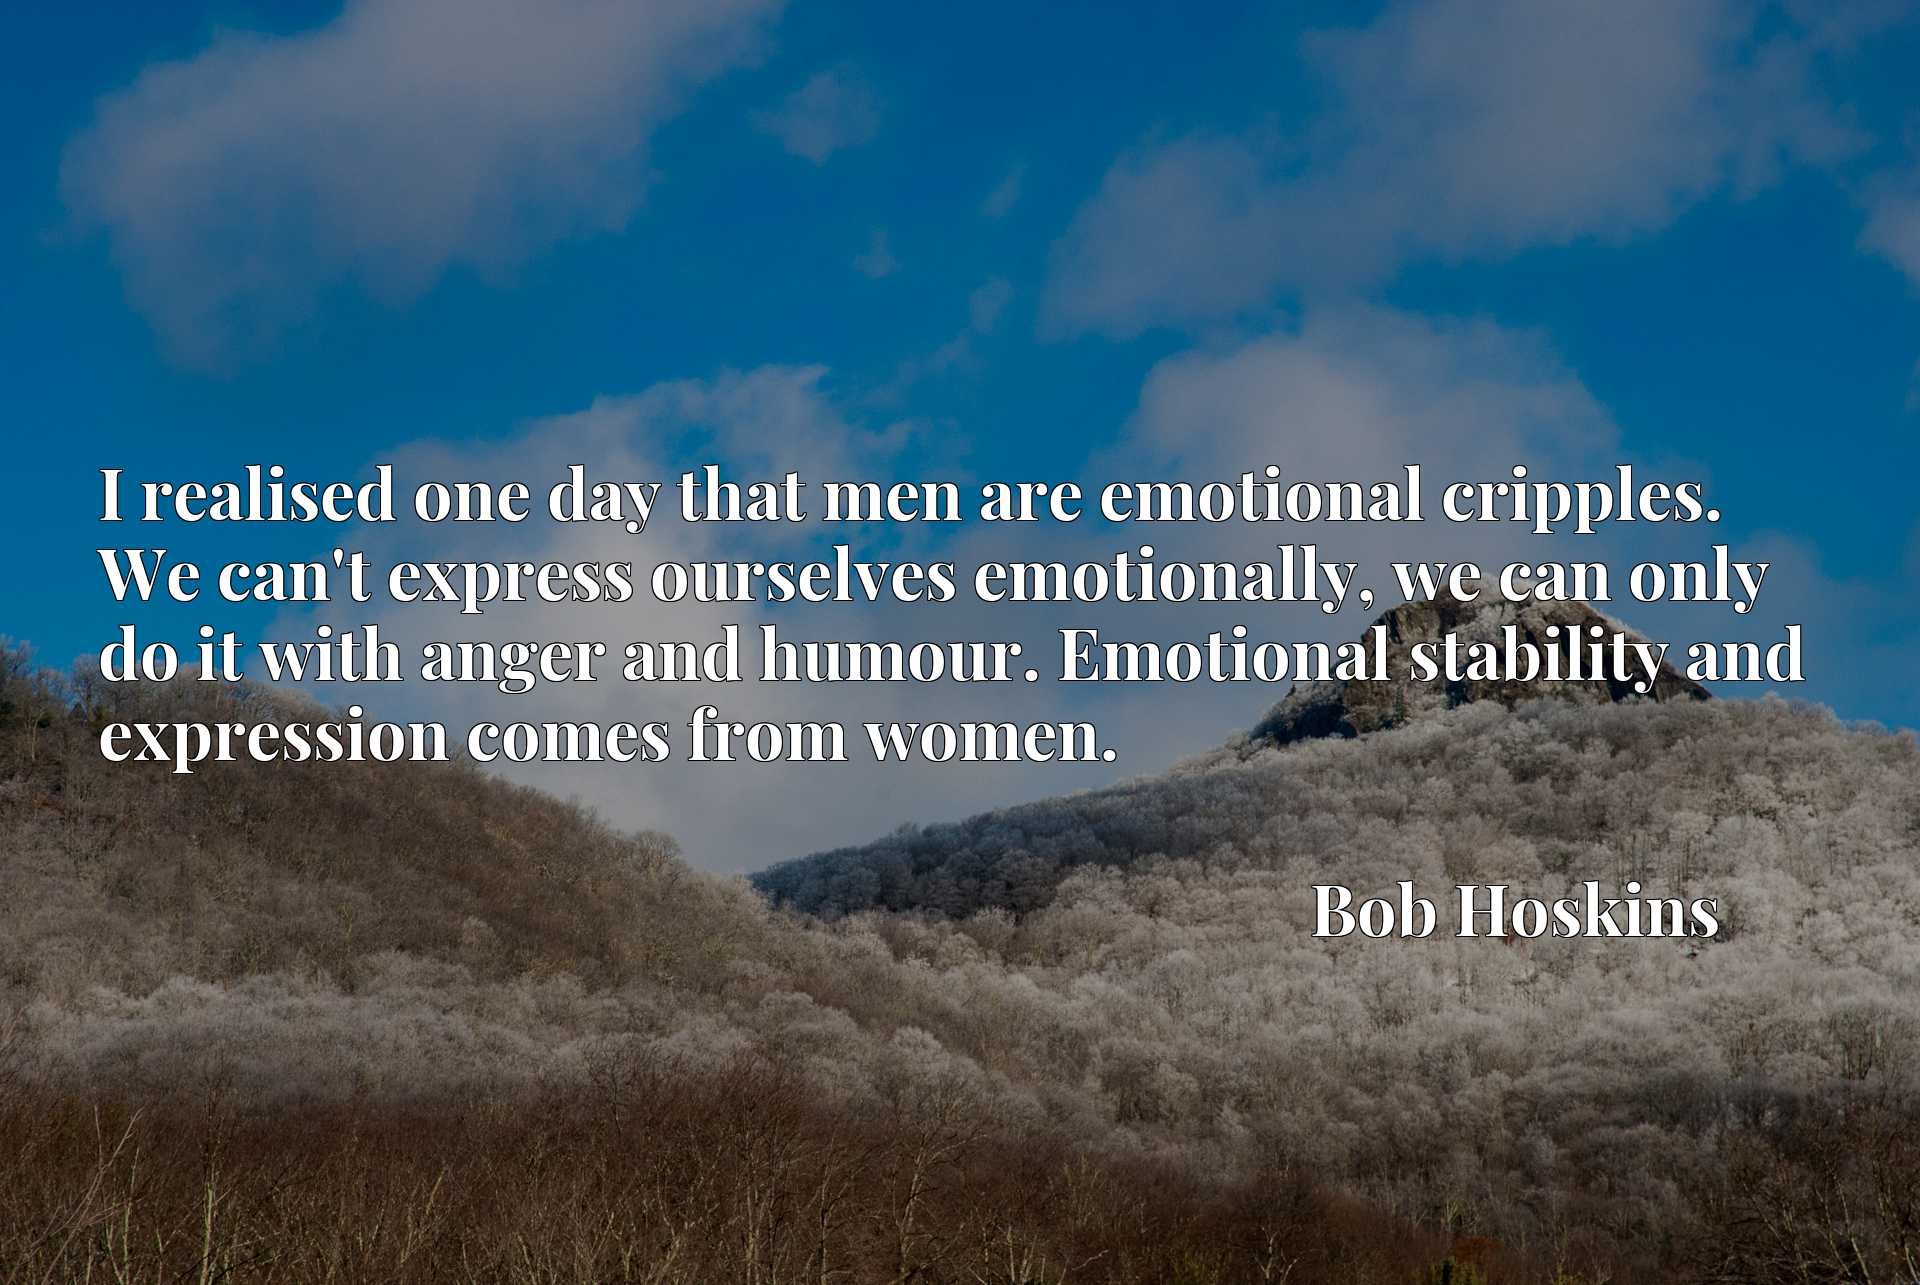 I realised one day that men are emotional cripples. We can't express ourselves emotionally, we can only do it with anger and humour. Emotional stability and expression comes from women.